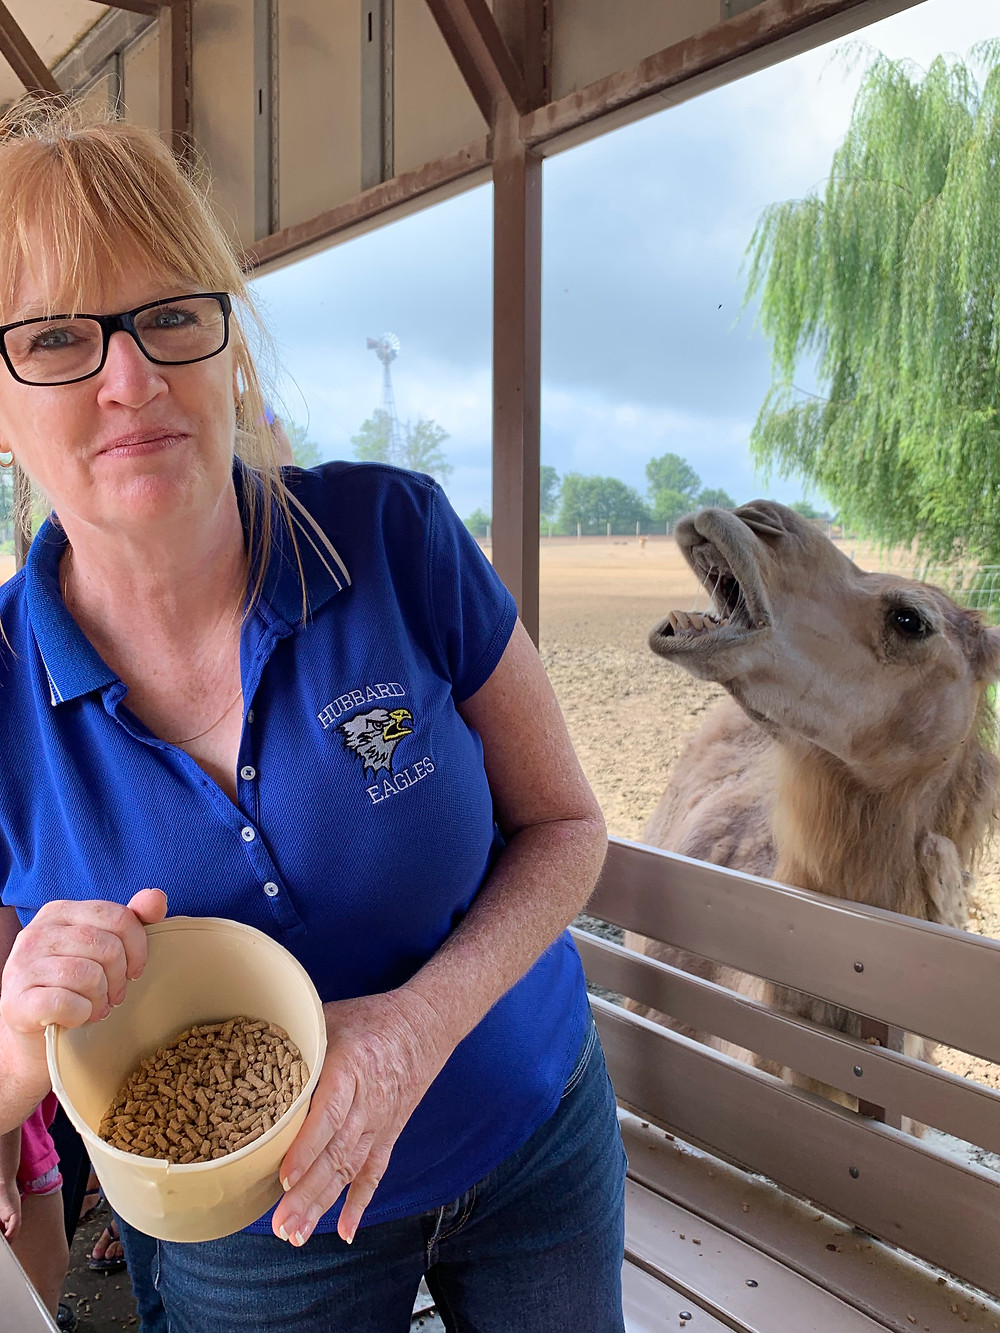 Teacher with animal food while animal waits in background